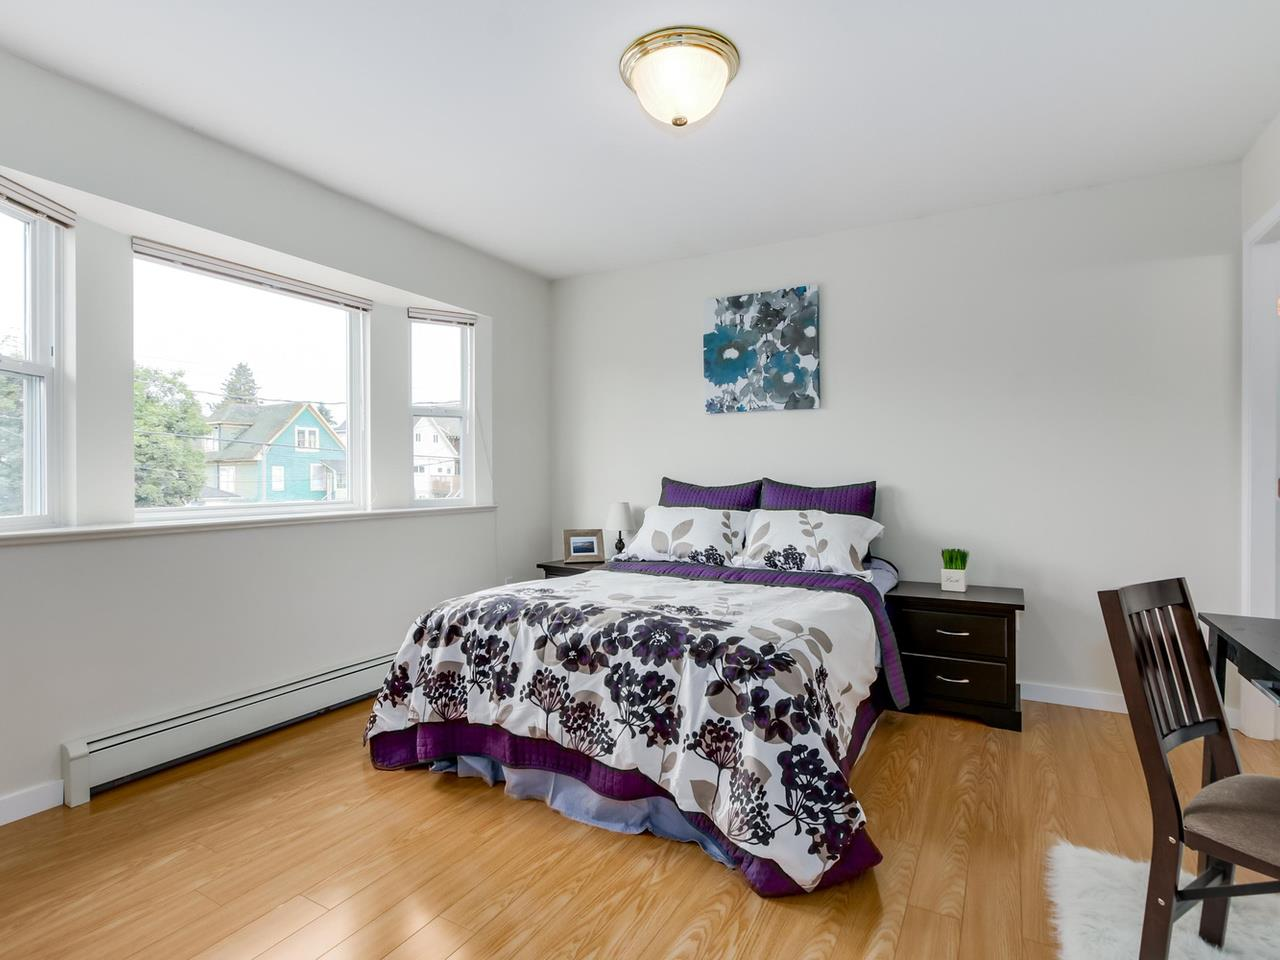 Photo 9: 1809 E 13TH AVENUE in Vancouver: Grandview VE House 1/2 Duplex for sale (Vancouver East)  : MLS(r) # R2081269